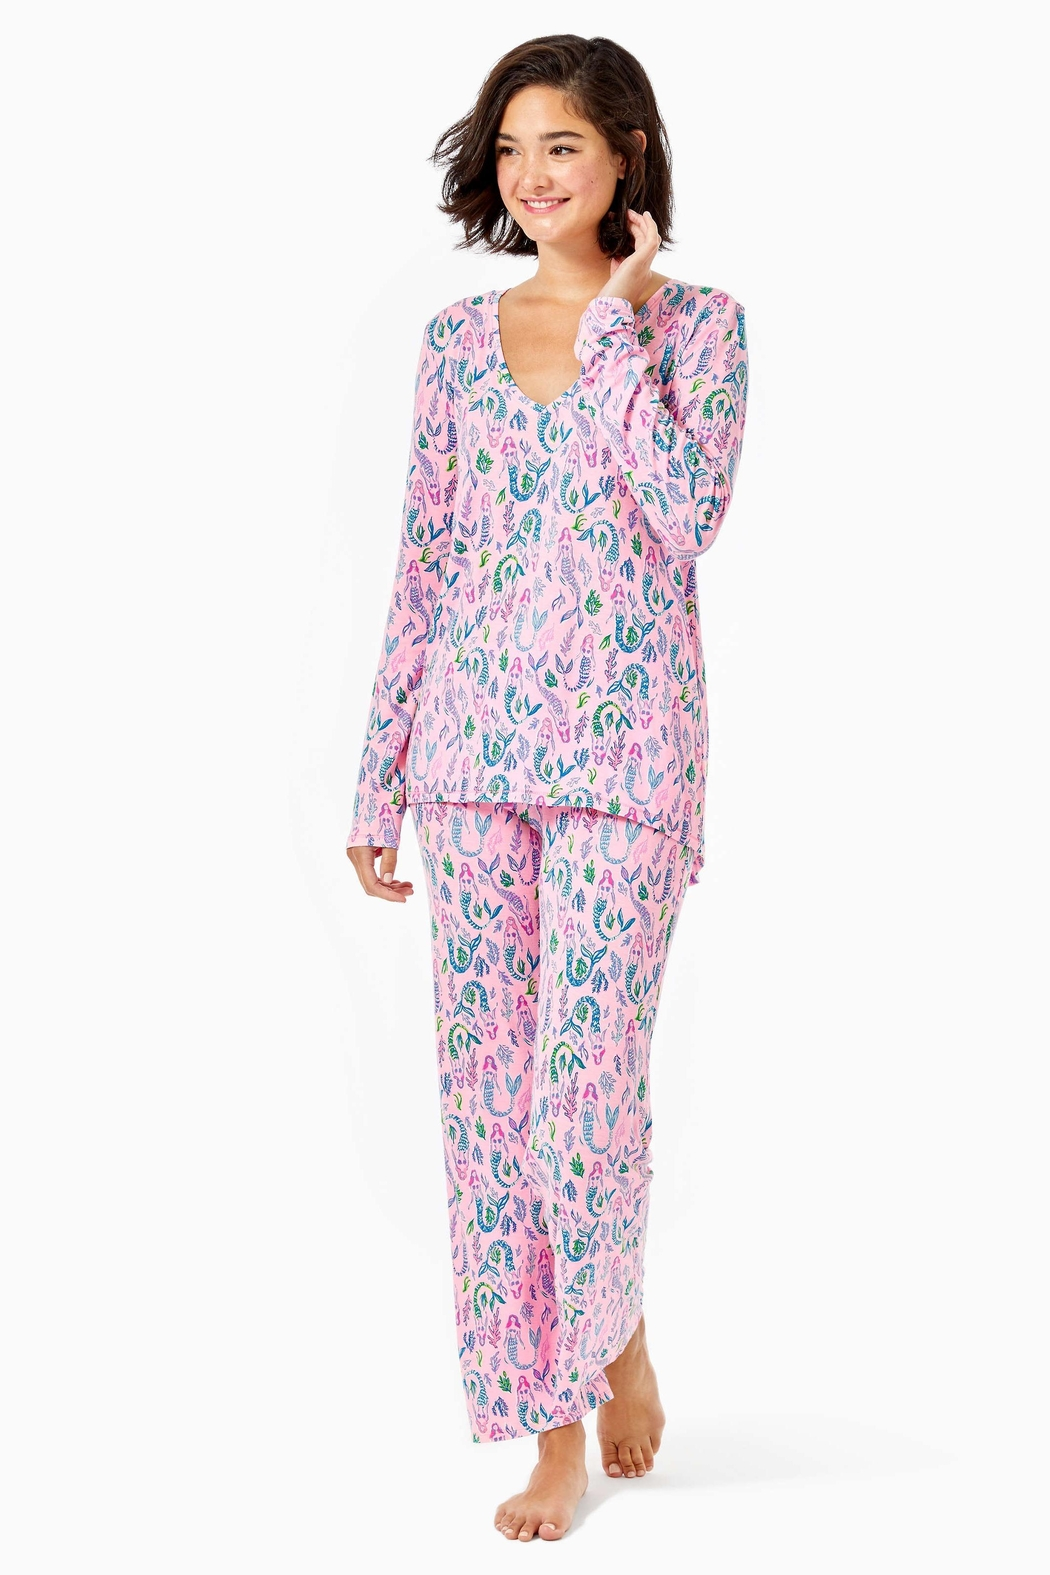 Lilly Pulitzer Pj Knit-Long-Sleeve Top - Side Cropped Image